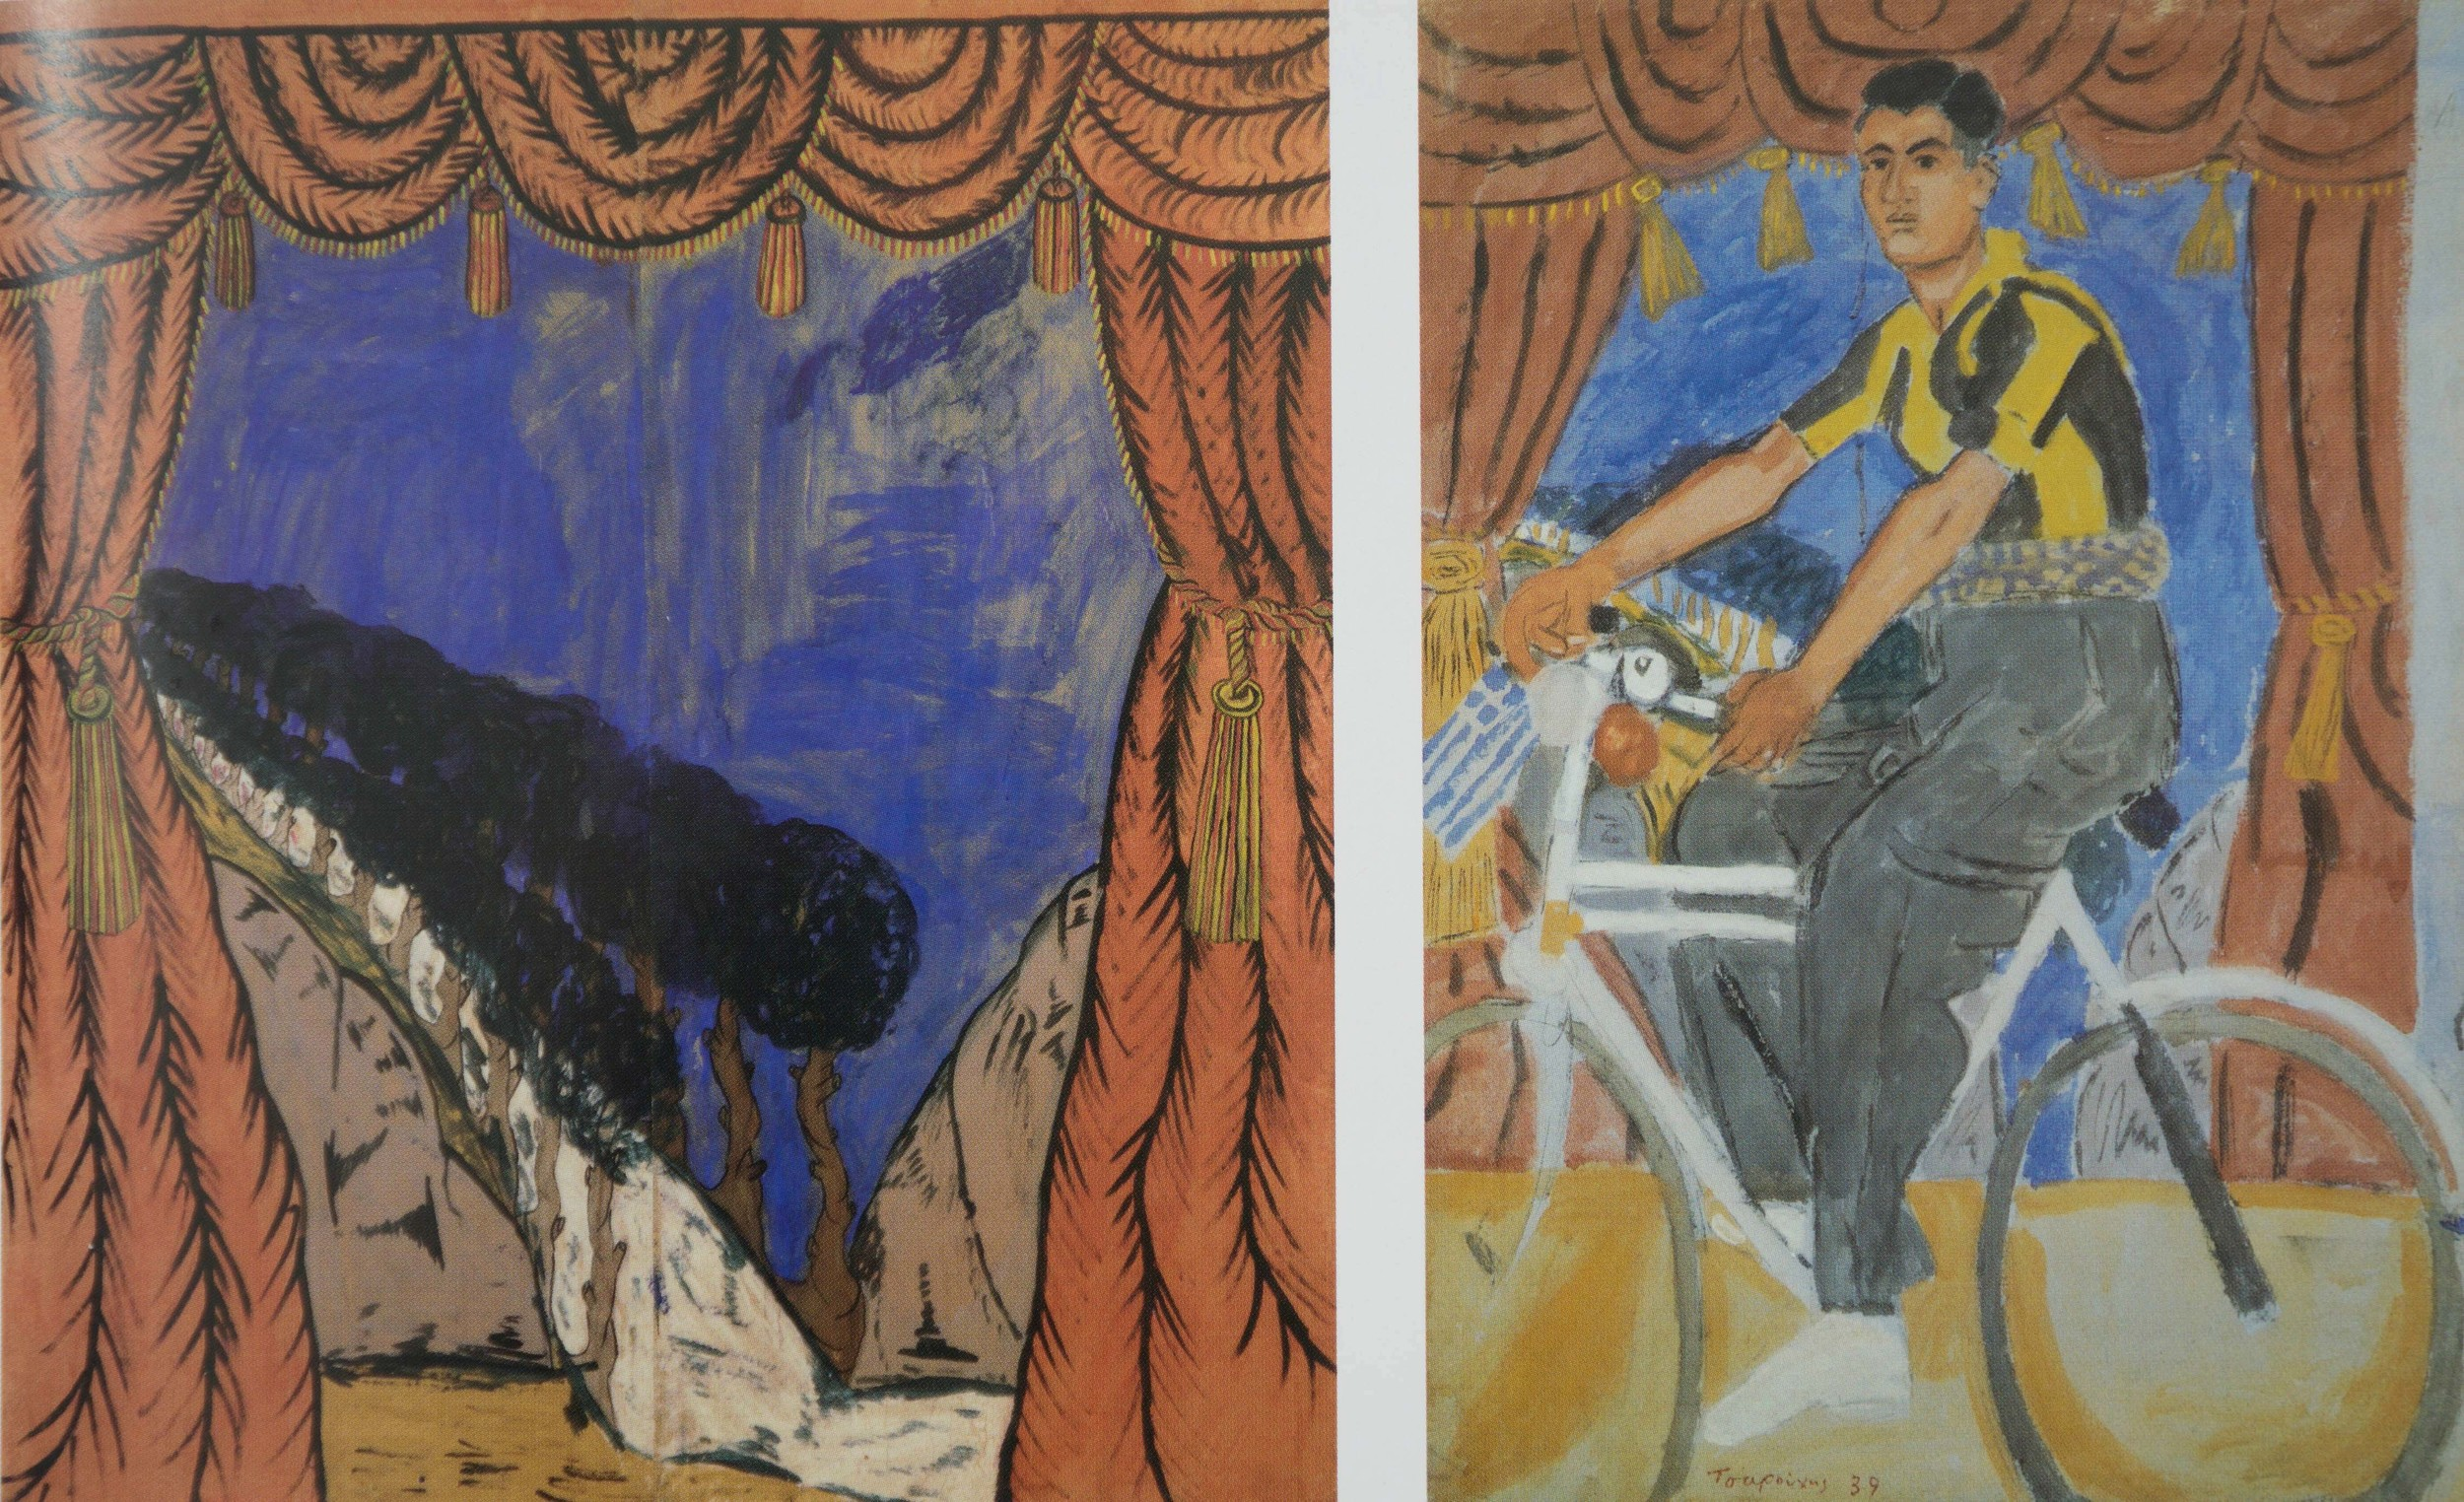 left: spatharis painting commissioned by tsarouchis, who used it as background in his painting on the right